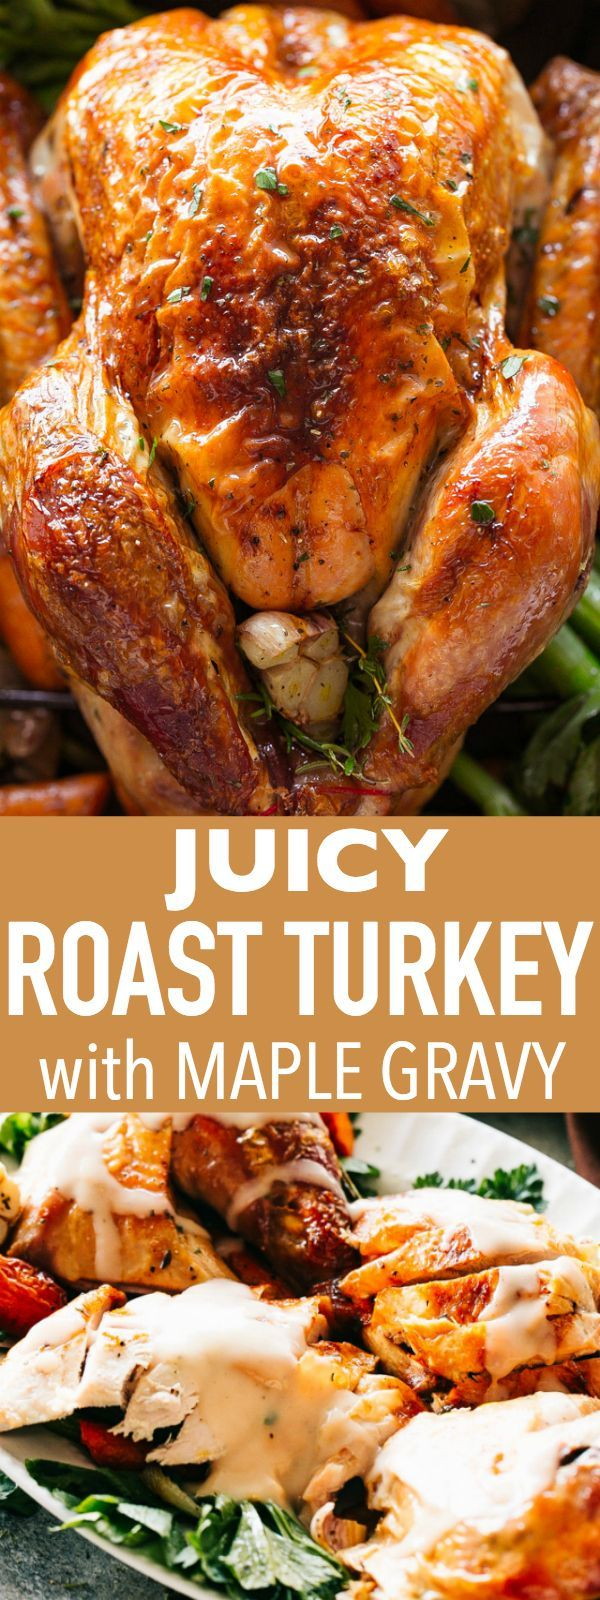 Photo of Juicy Roast Turkey Recipe with Maple Gravy for Thanksgiving!